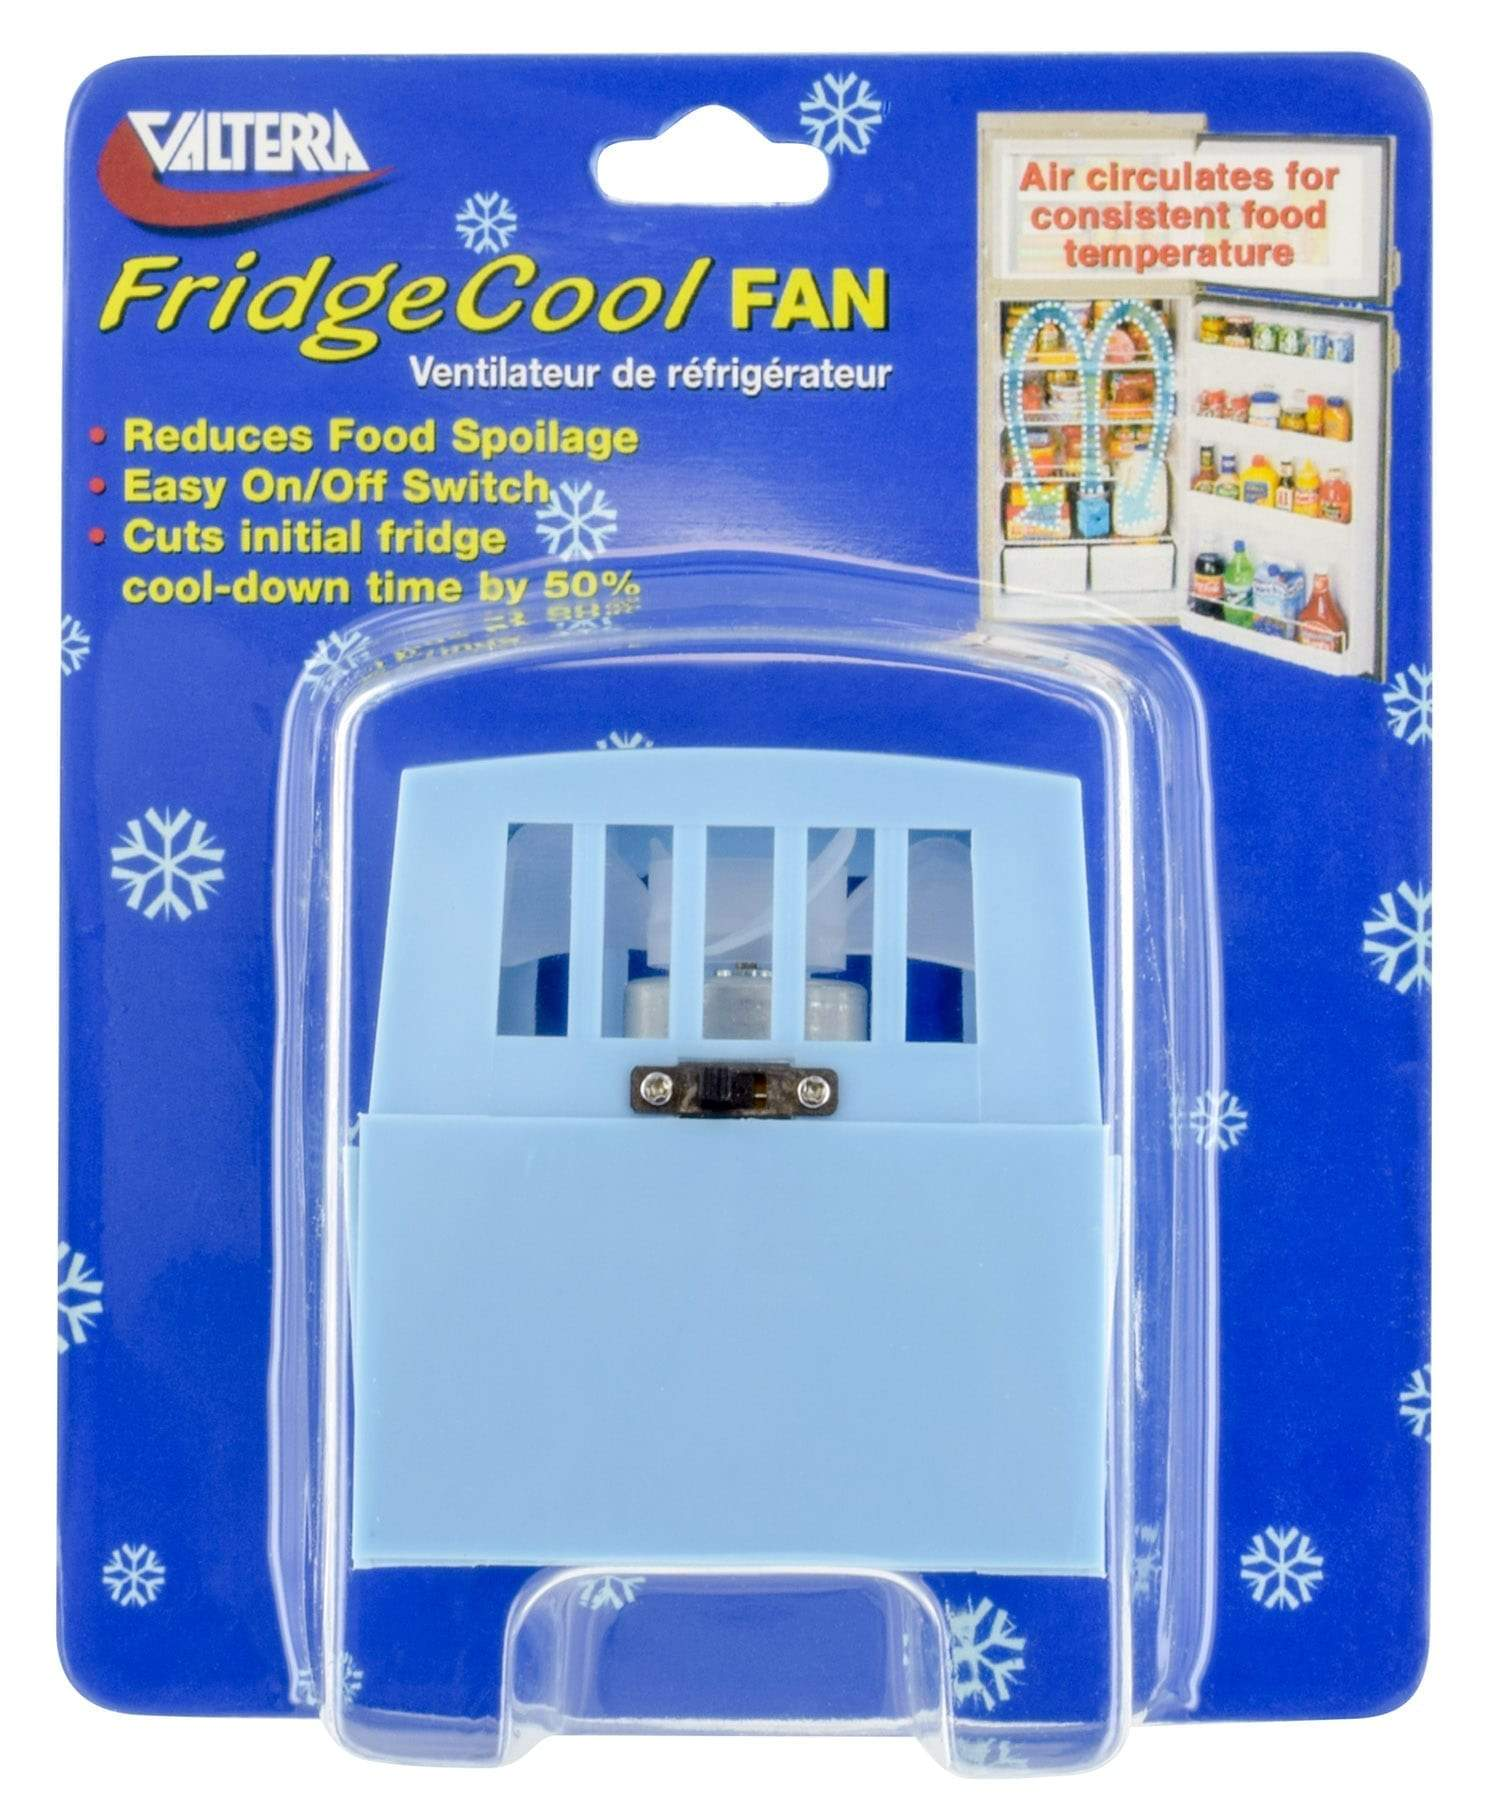 Fridge Vent Fan Valterra to circulate temperature evenly around your fridge Valterra